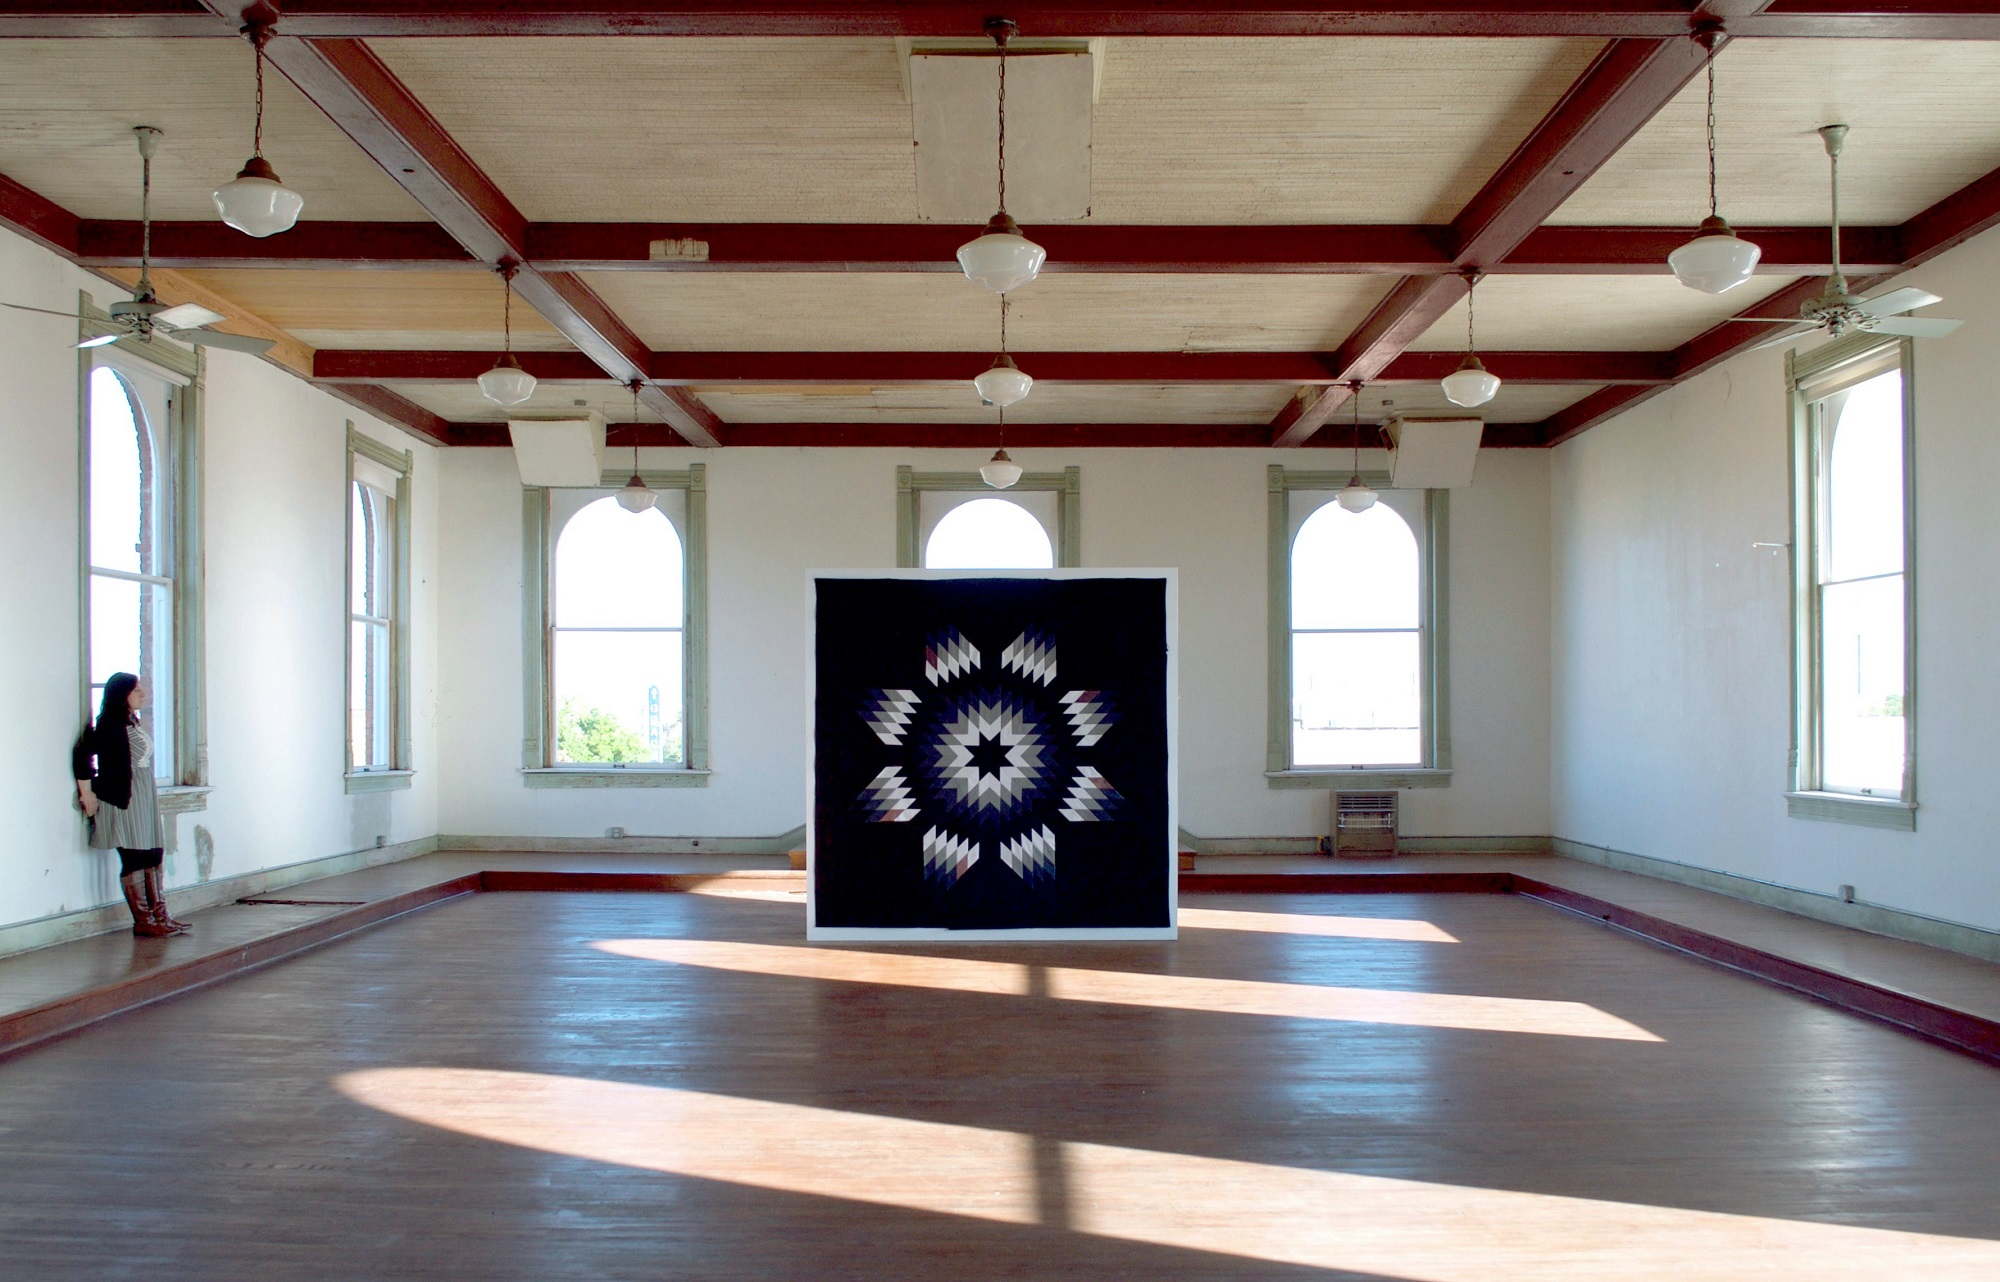 Andreana Donahue, Lone Star (Remembrance Quilt), installation view at 100 West in Corsicana, Texas, 2016 (Image courtesy Kyle Hobratschk)